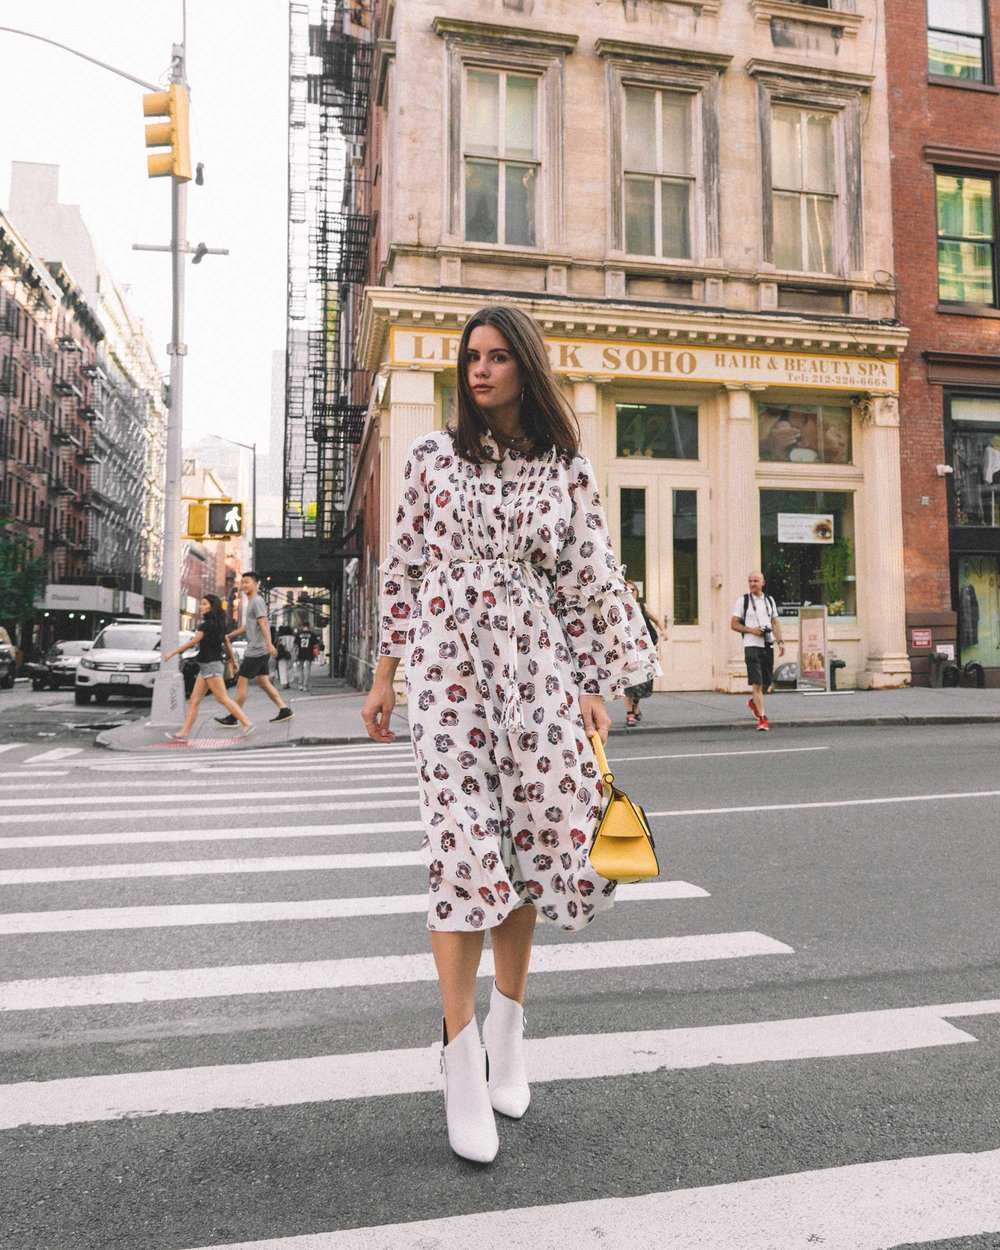 Madewell x Karen Walker Floral Fantasia Ruffled Dress and BOYY Karl 24 Bag soho new york fashion week outfit1.jpg